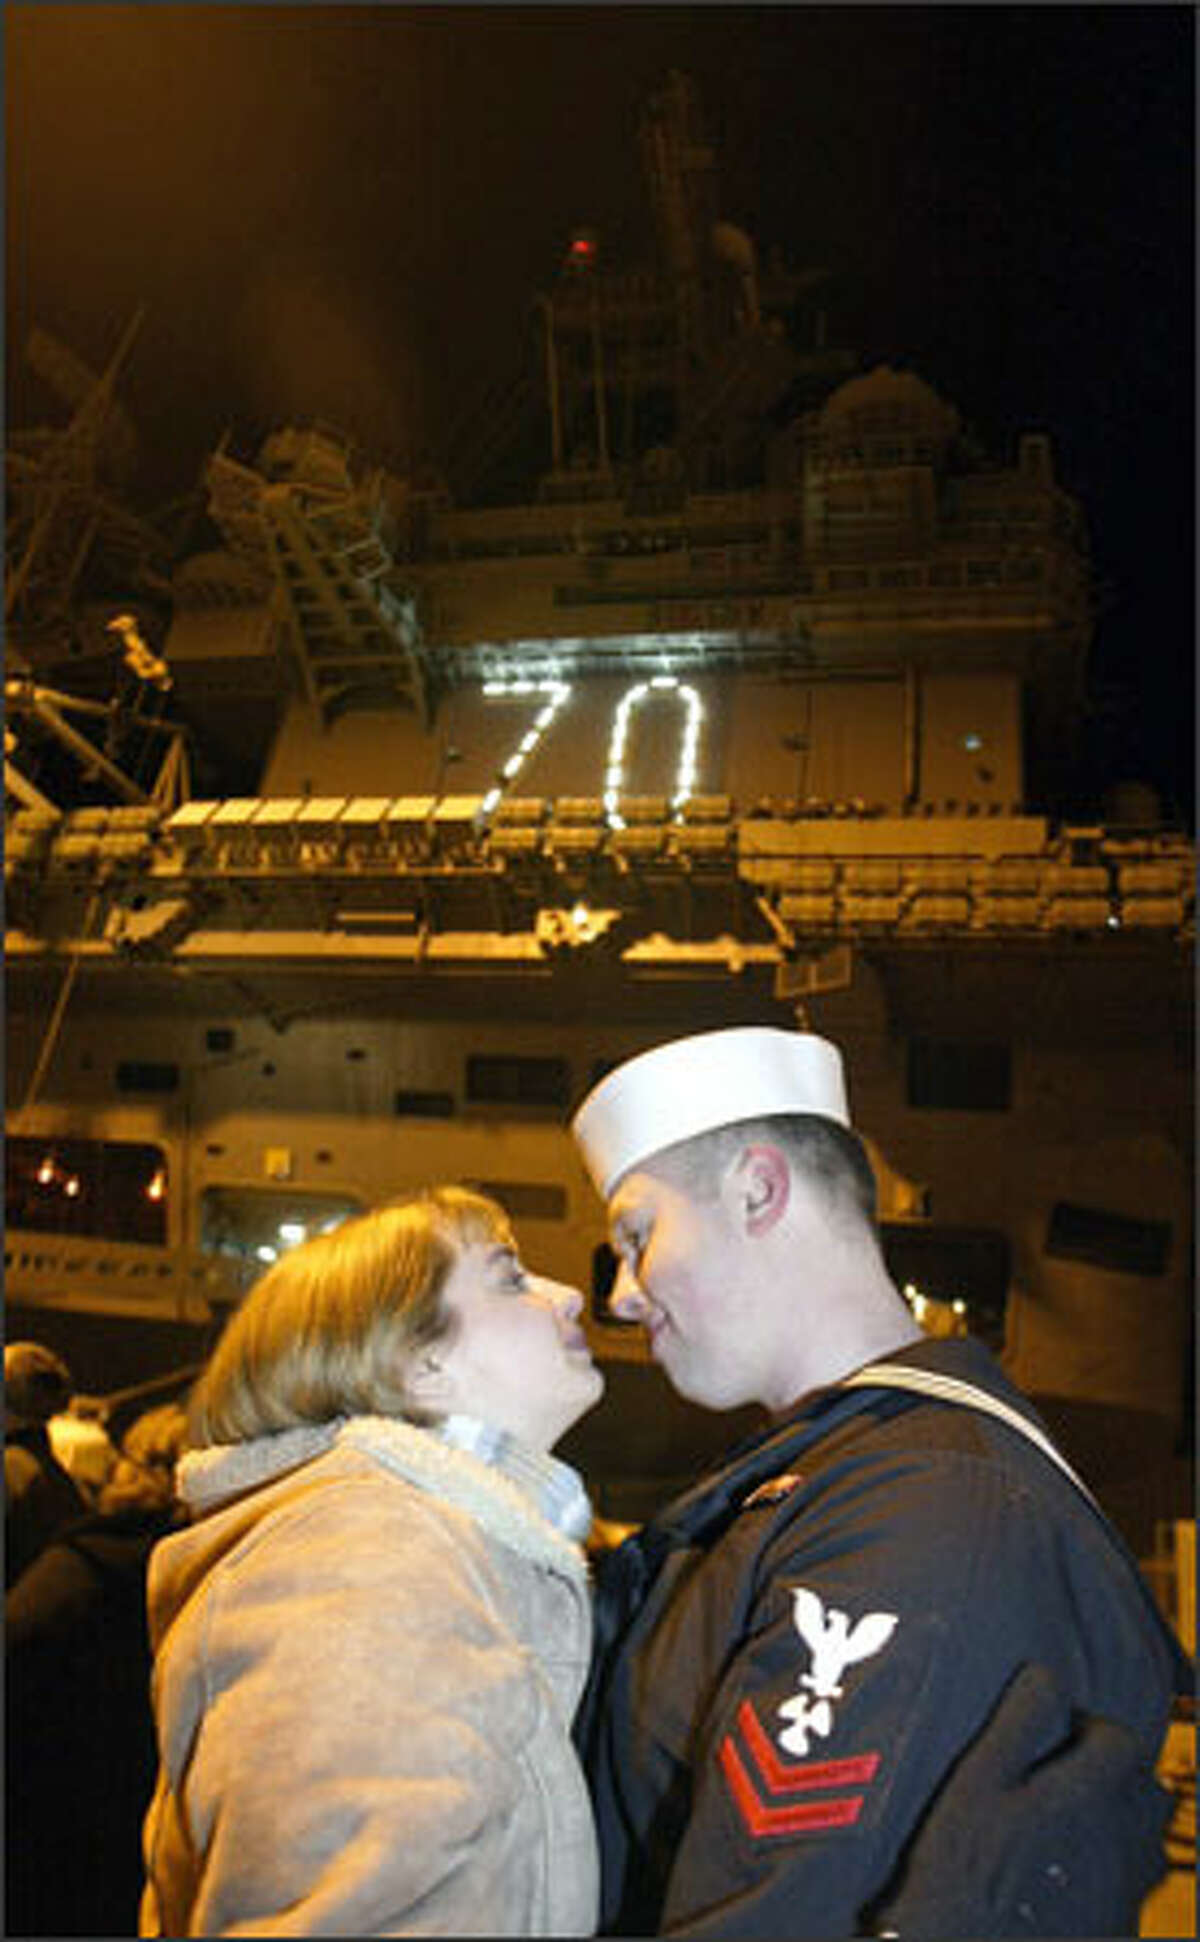 Susan Higbe gazes into the eyes of her husband of 15 months, Petty Officer 2nd Class Joe Higbe, before he boards the USS Carl Vinson. Higbe was among sailors who left Bremerton Thursday for a six-month, round-the-world cruise that will end in Norfolk, Va.